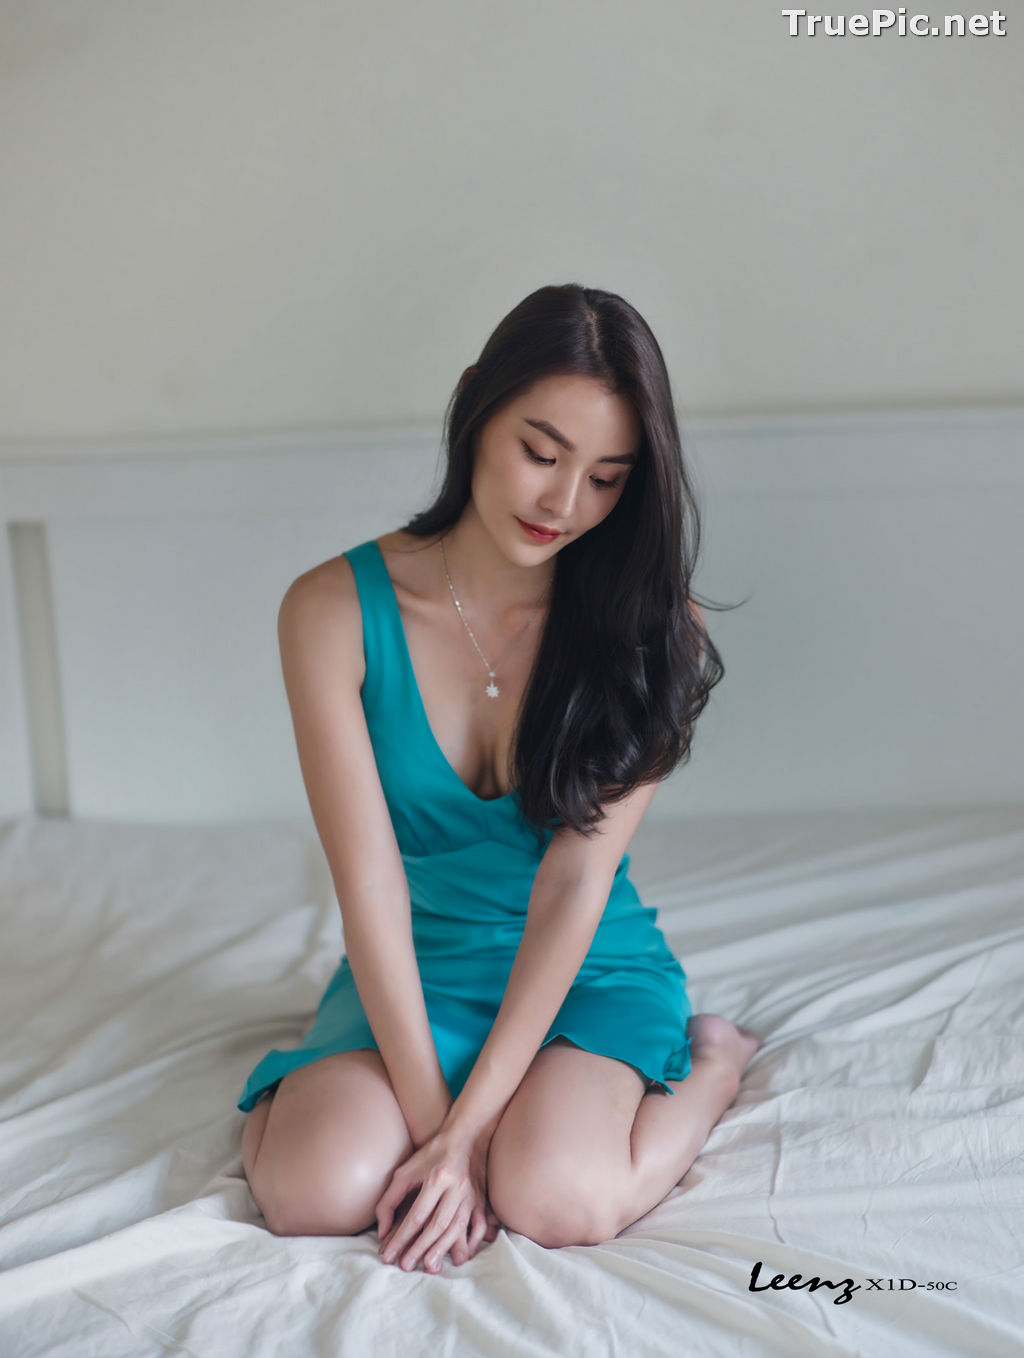 ImageThailand Model - Kapook Phatchara - Do You See Angel Smile? - TruePic.net - Picture-19